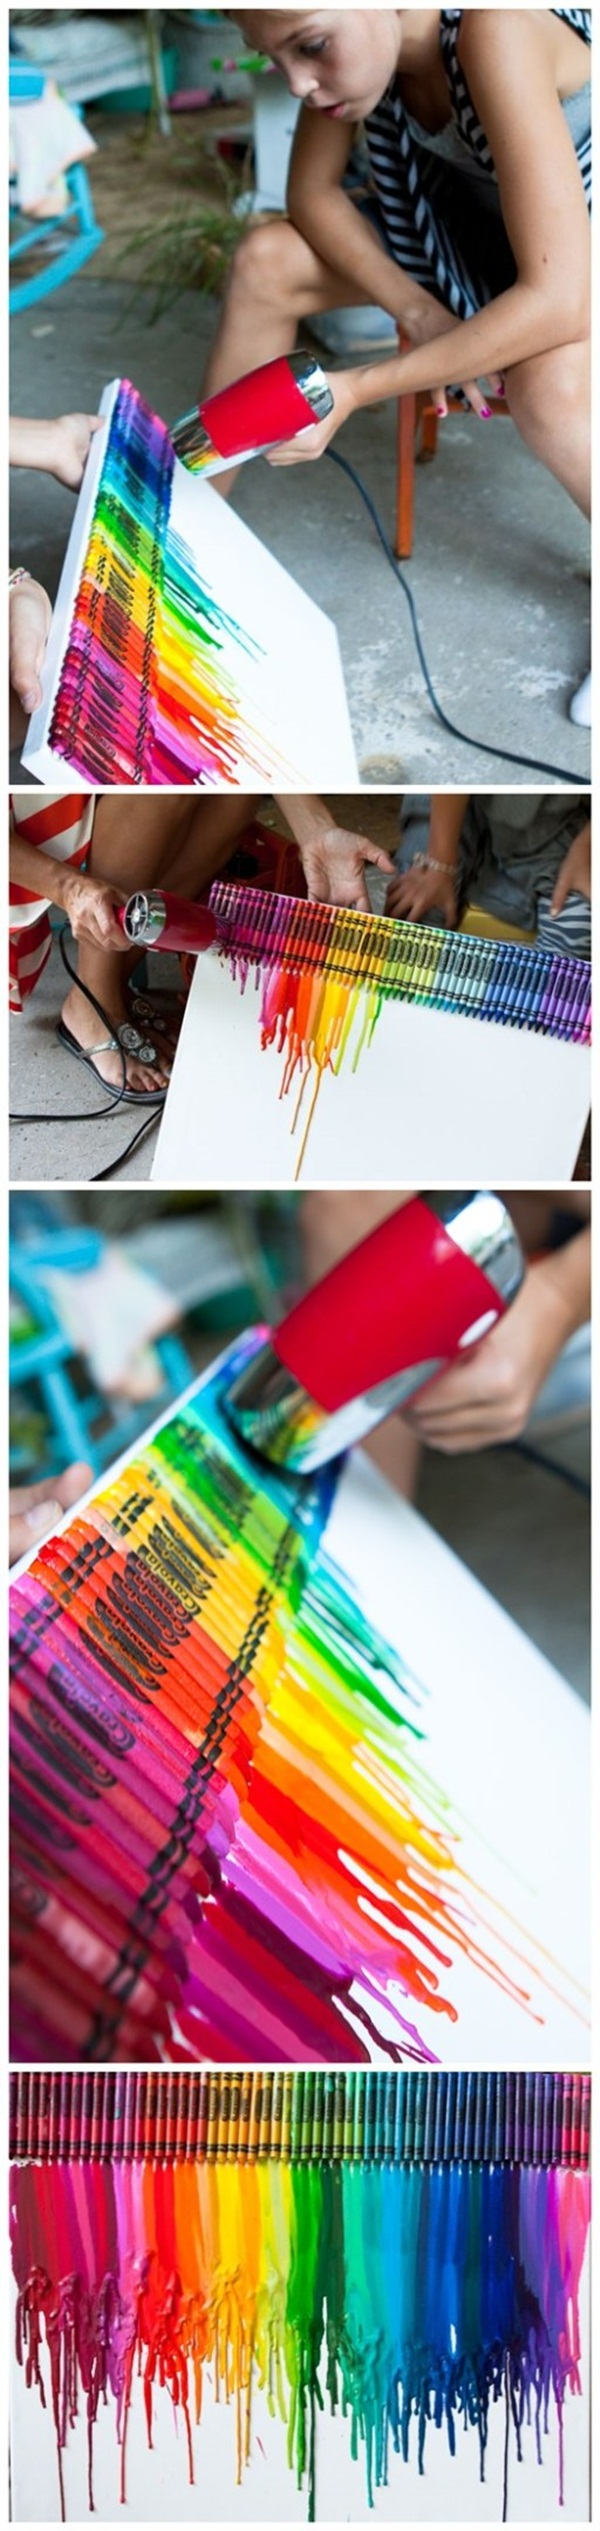 how to make crayon art on canvas